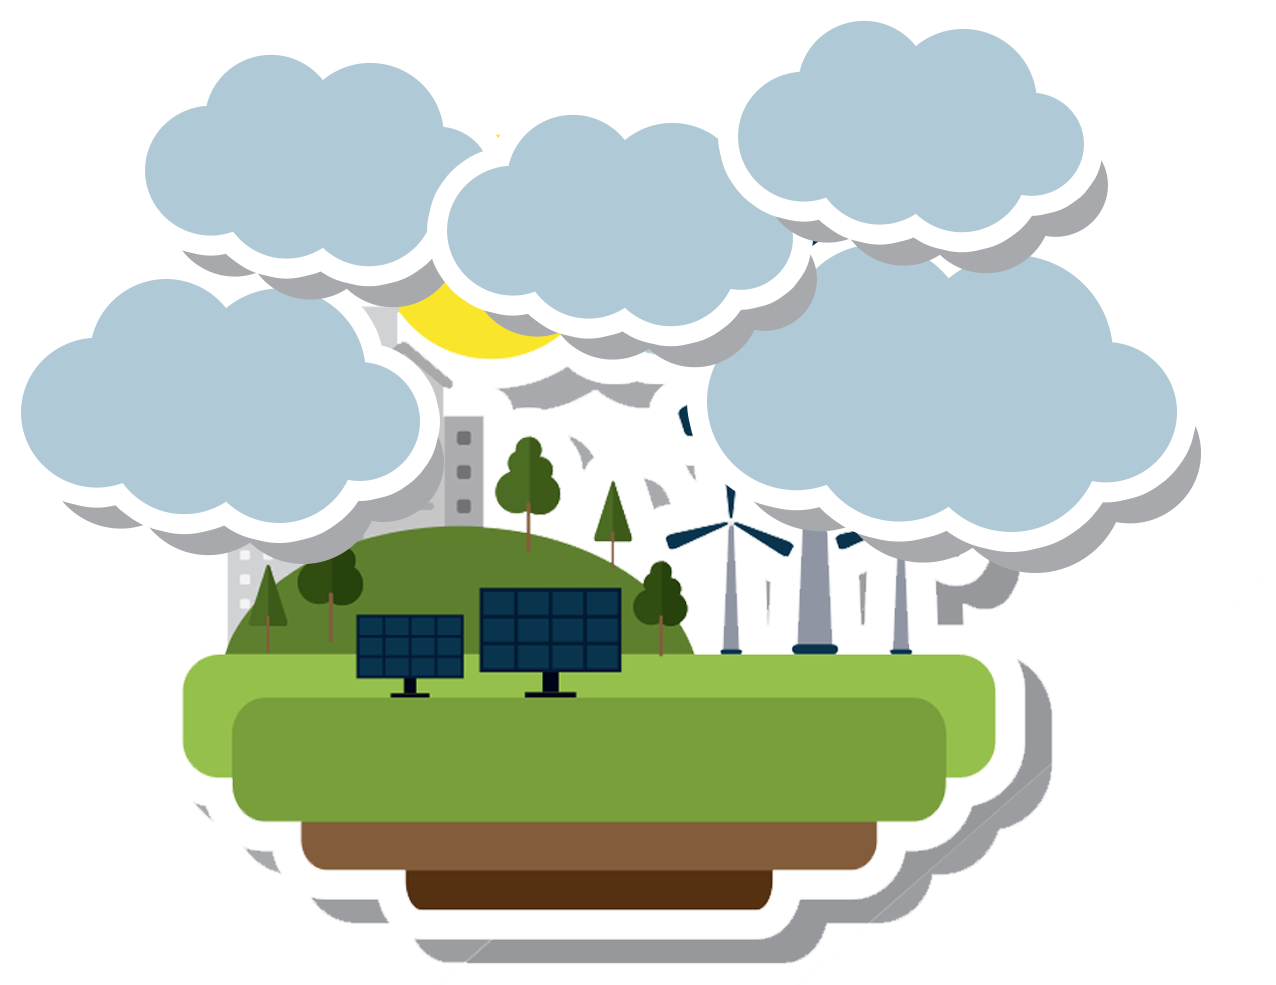 Solar panel clipart energy source. Is worth it letsgosolar